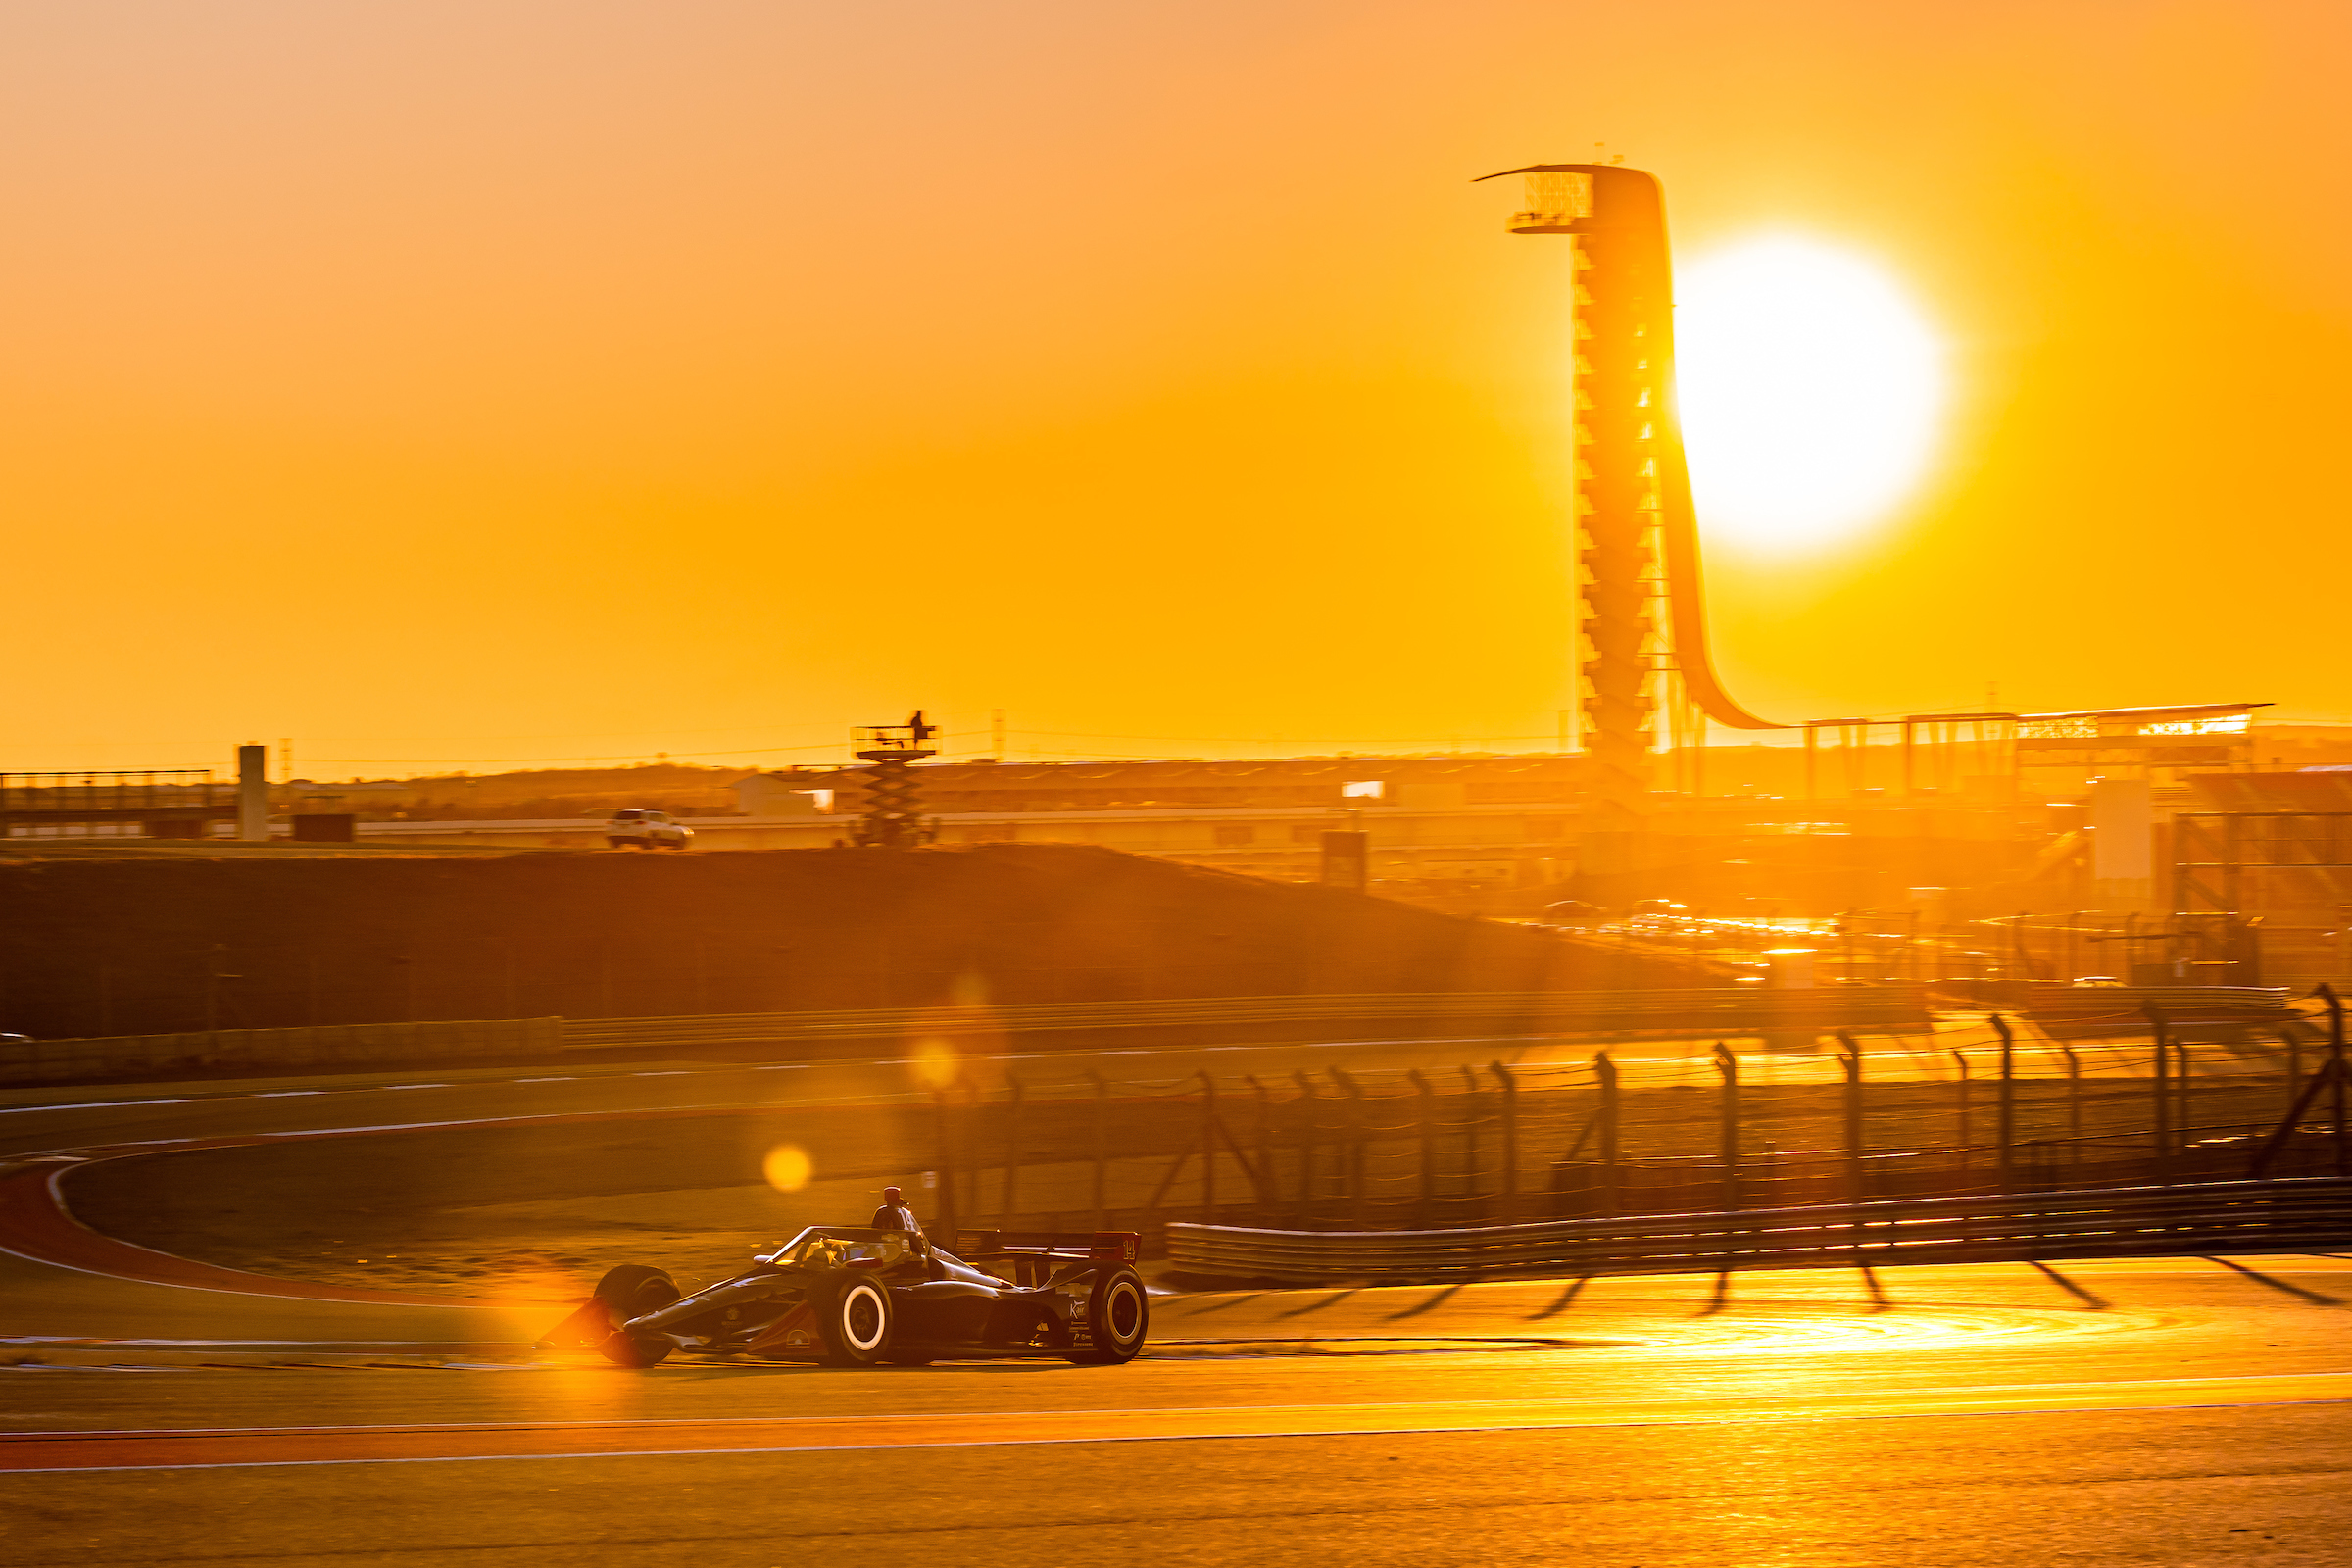 Driving at COTA at sunset